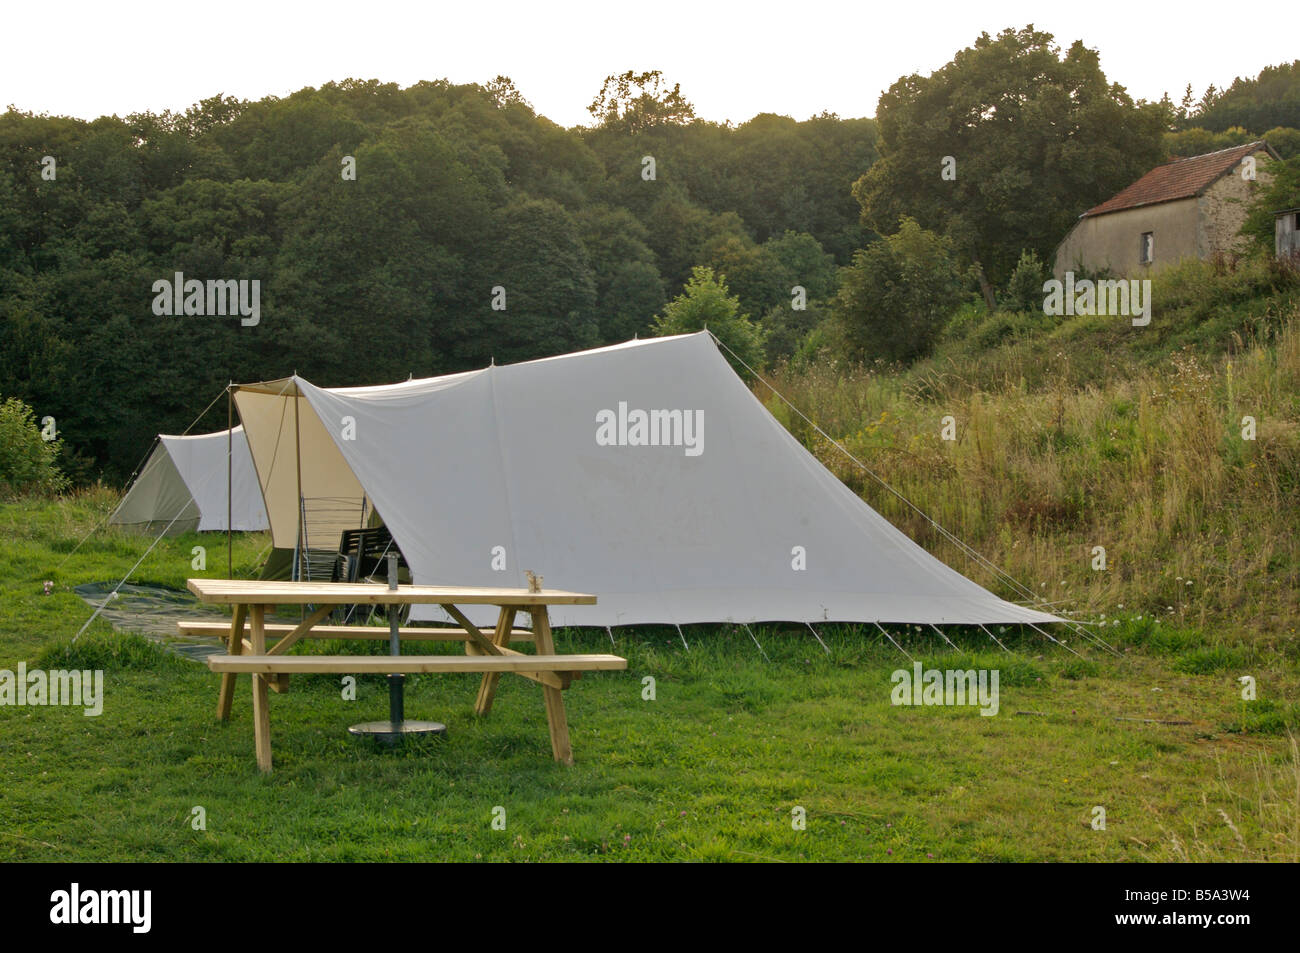 Tents at a c&sight in the Morvan Burgundy France & Tents at a campsight in the Morvan Burgundy France Stock Photo ...